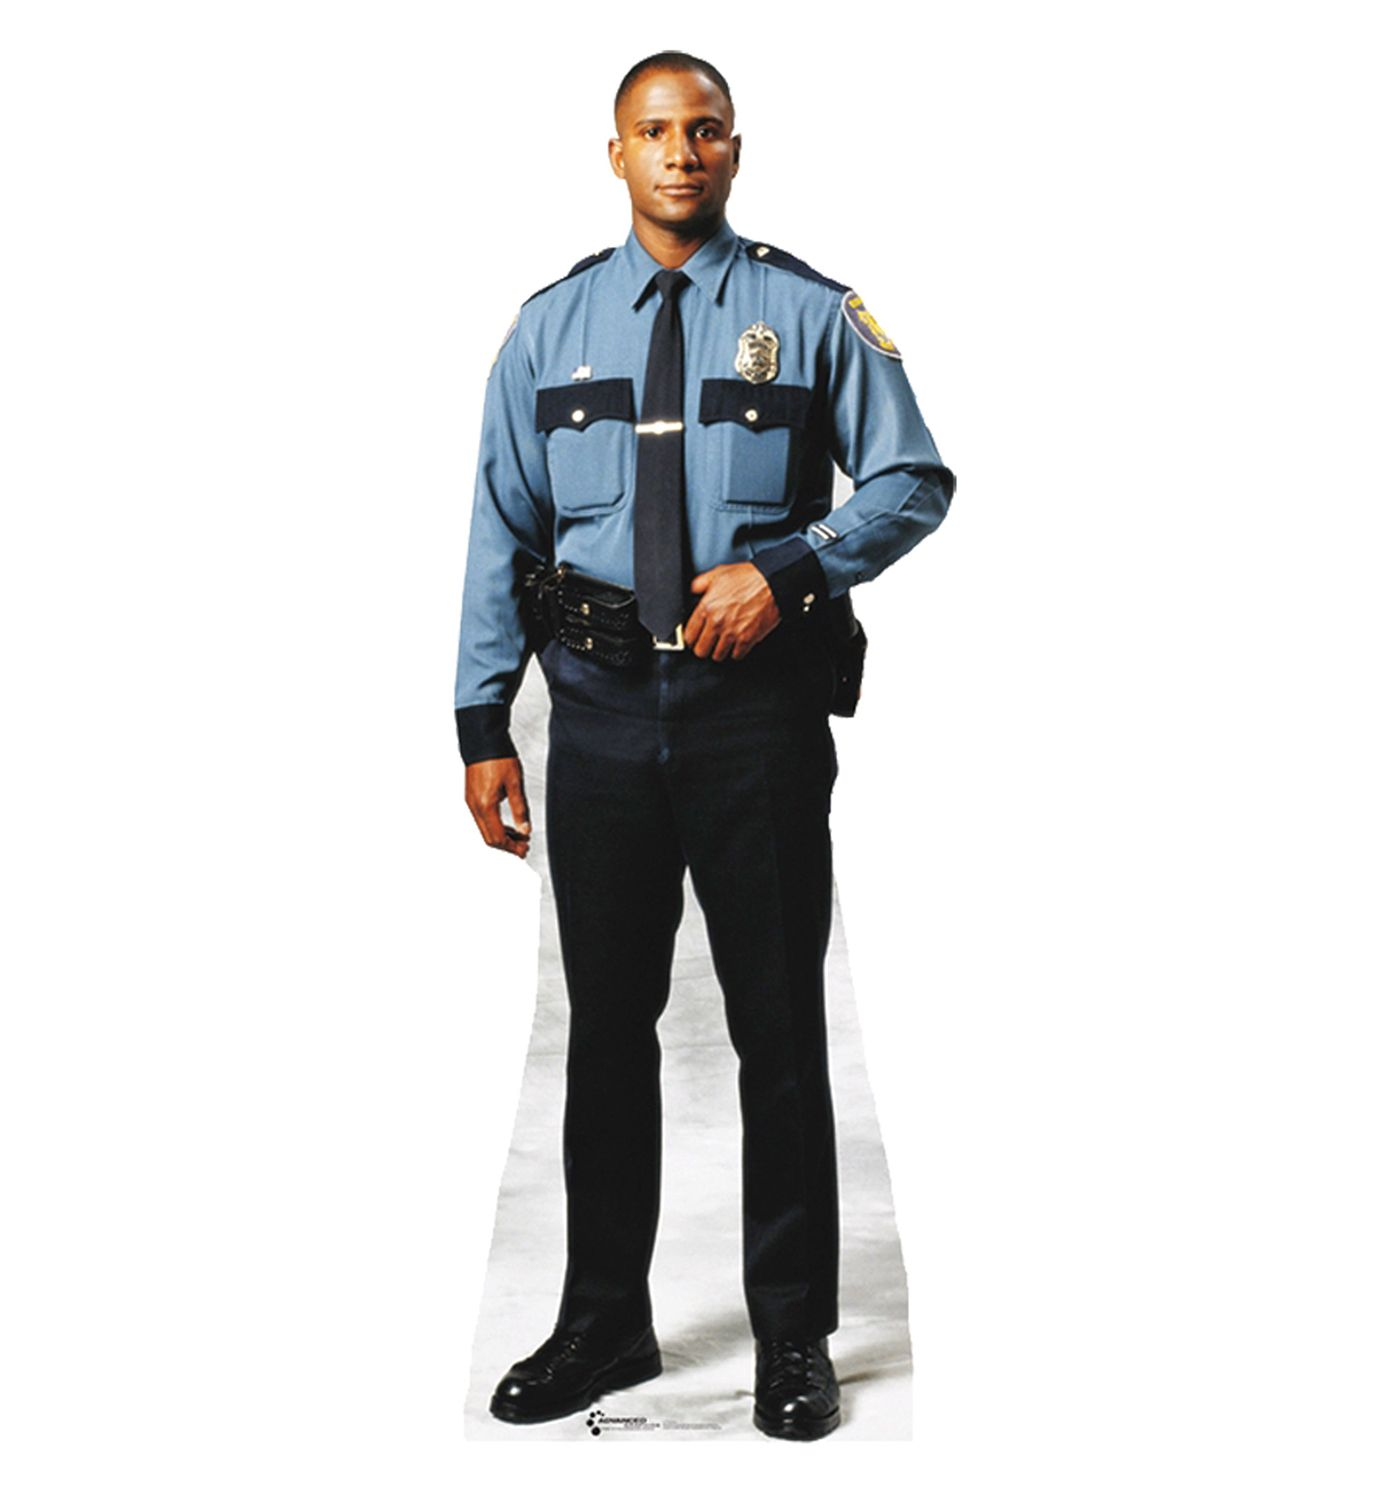 Policeman Merica Stand Up Modern